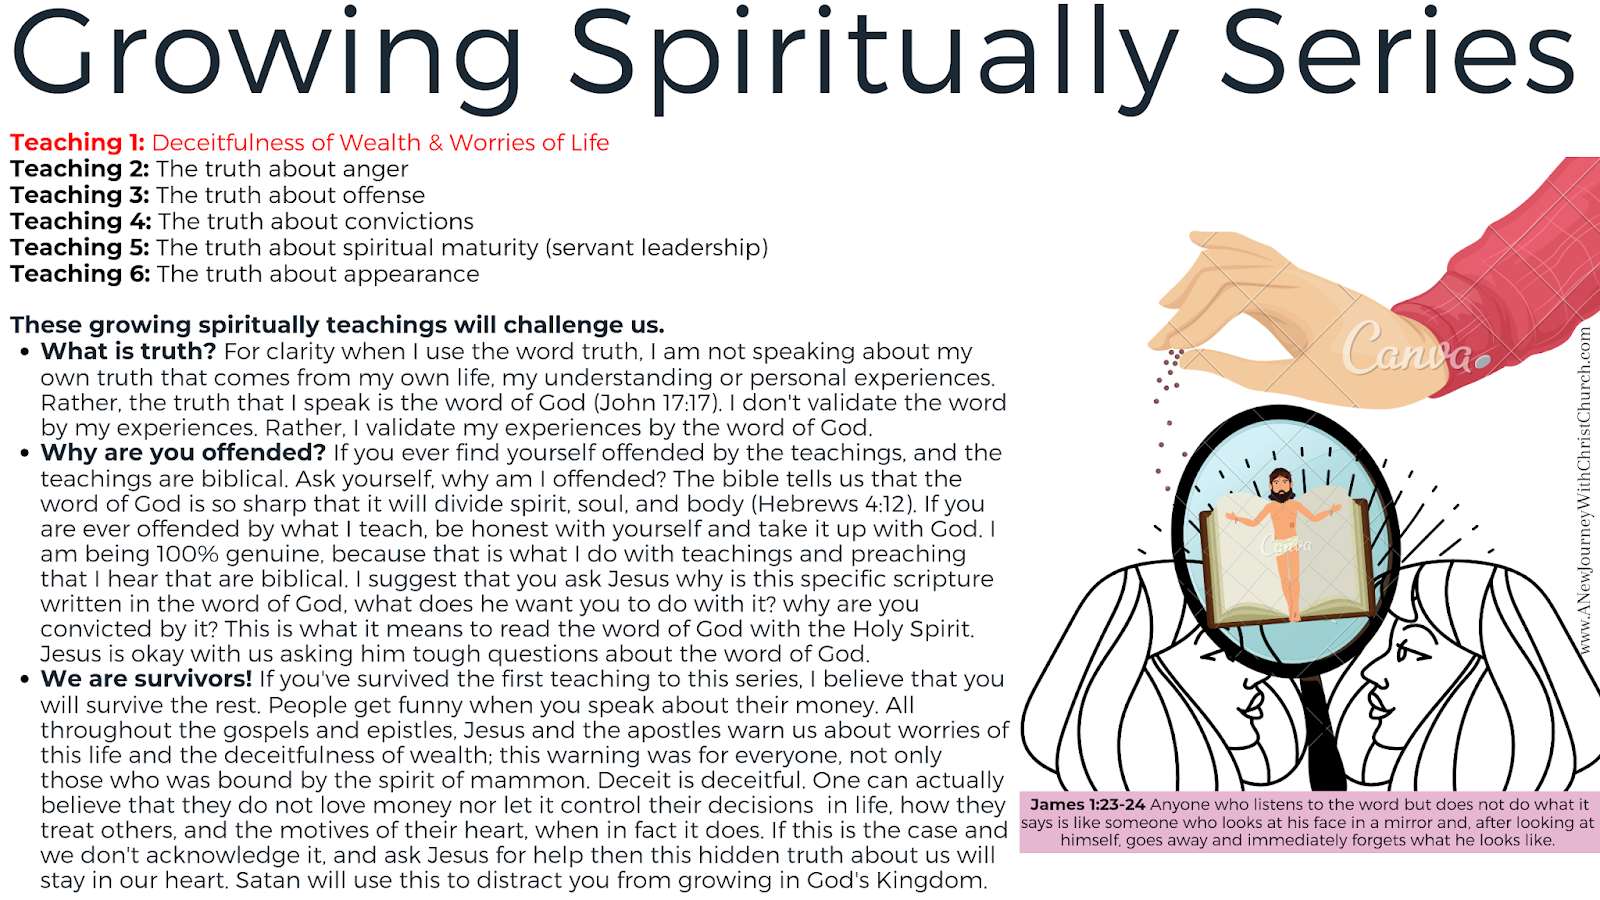 Growing Spiritually 1 of 6: The worries of this life & The deceitfulness of wealth